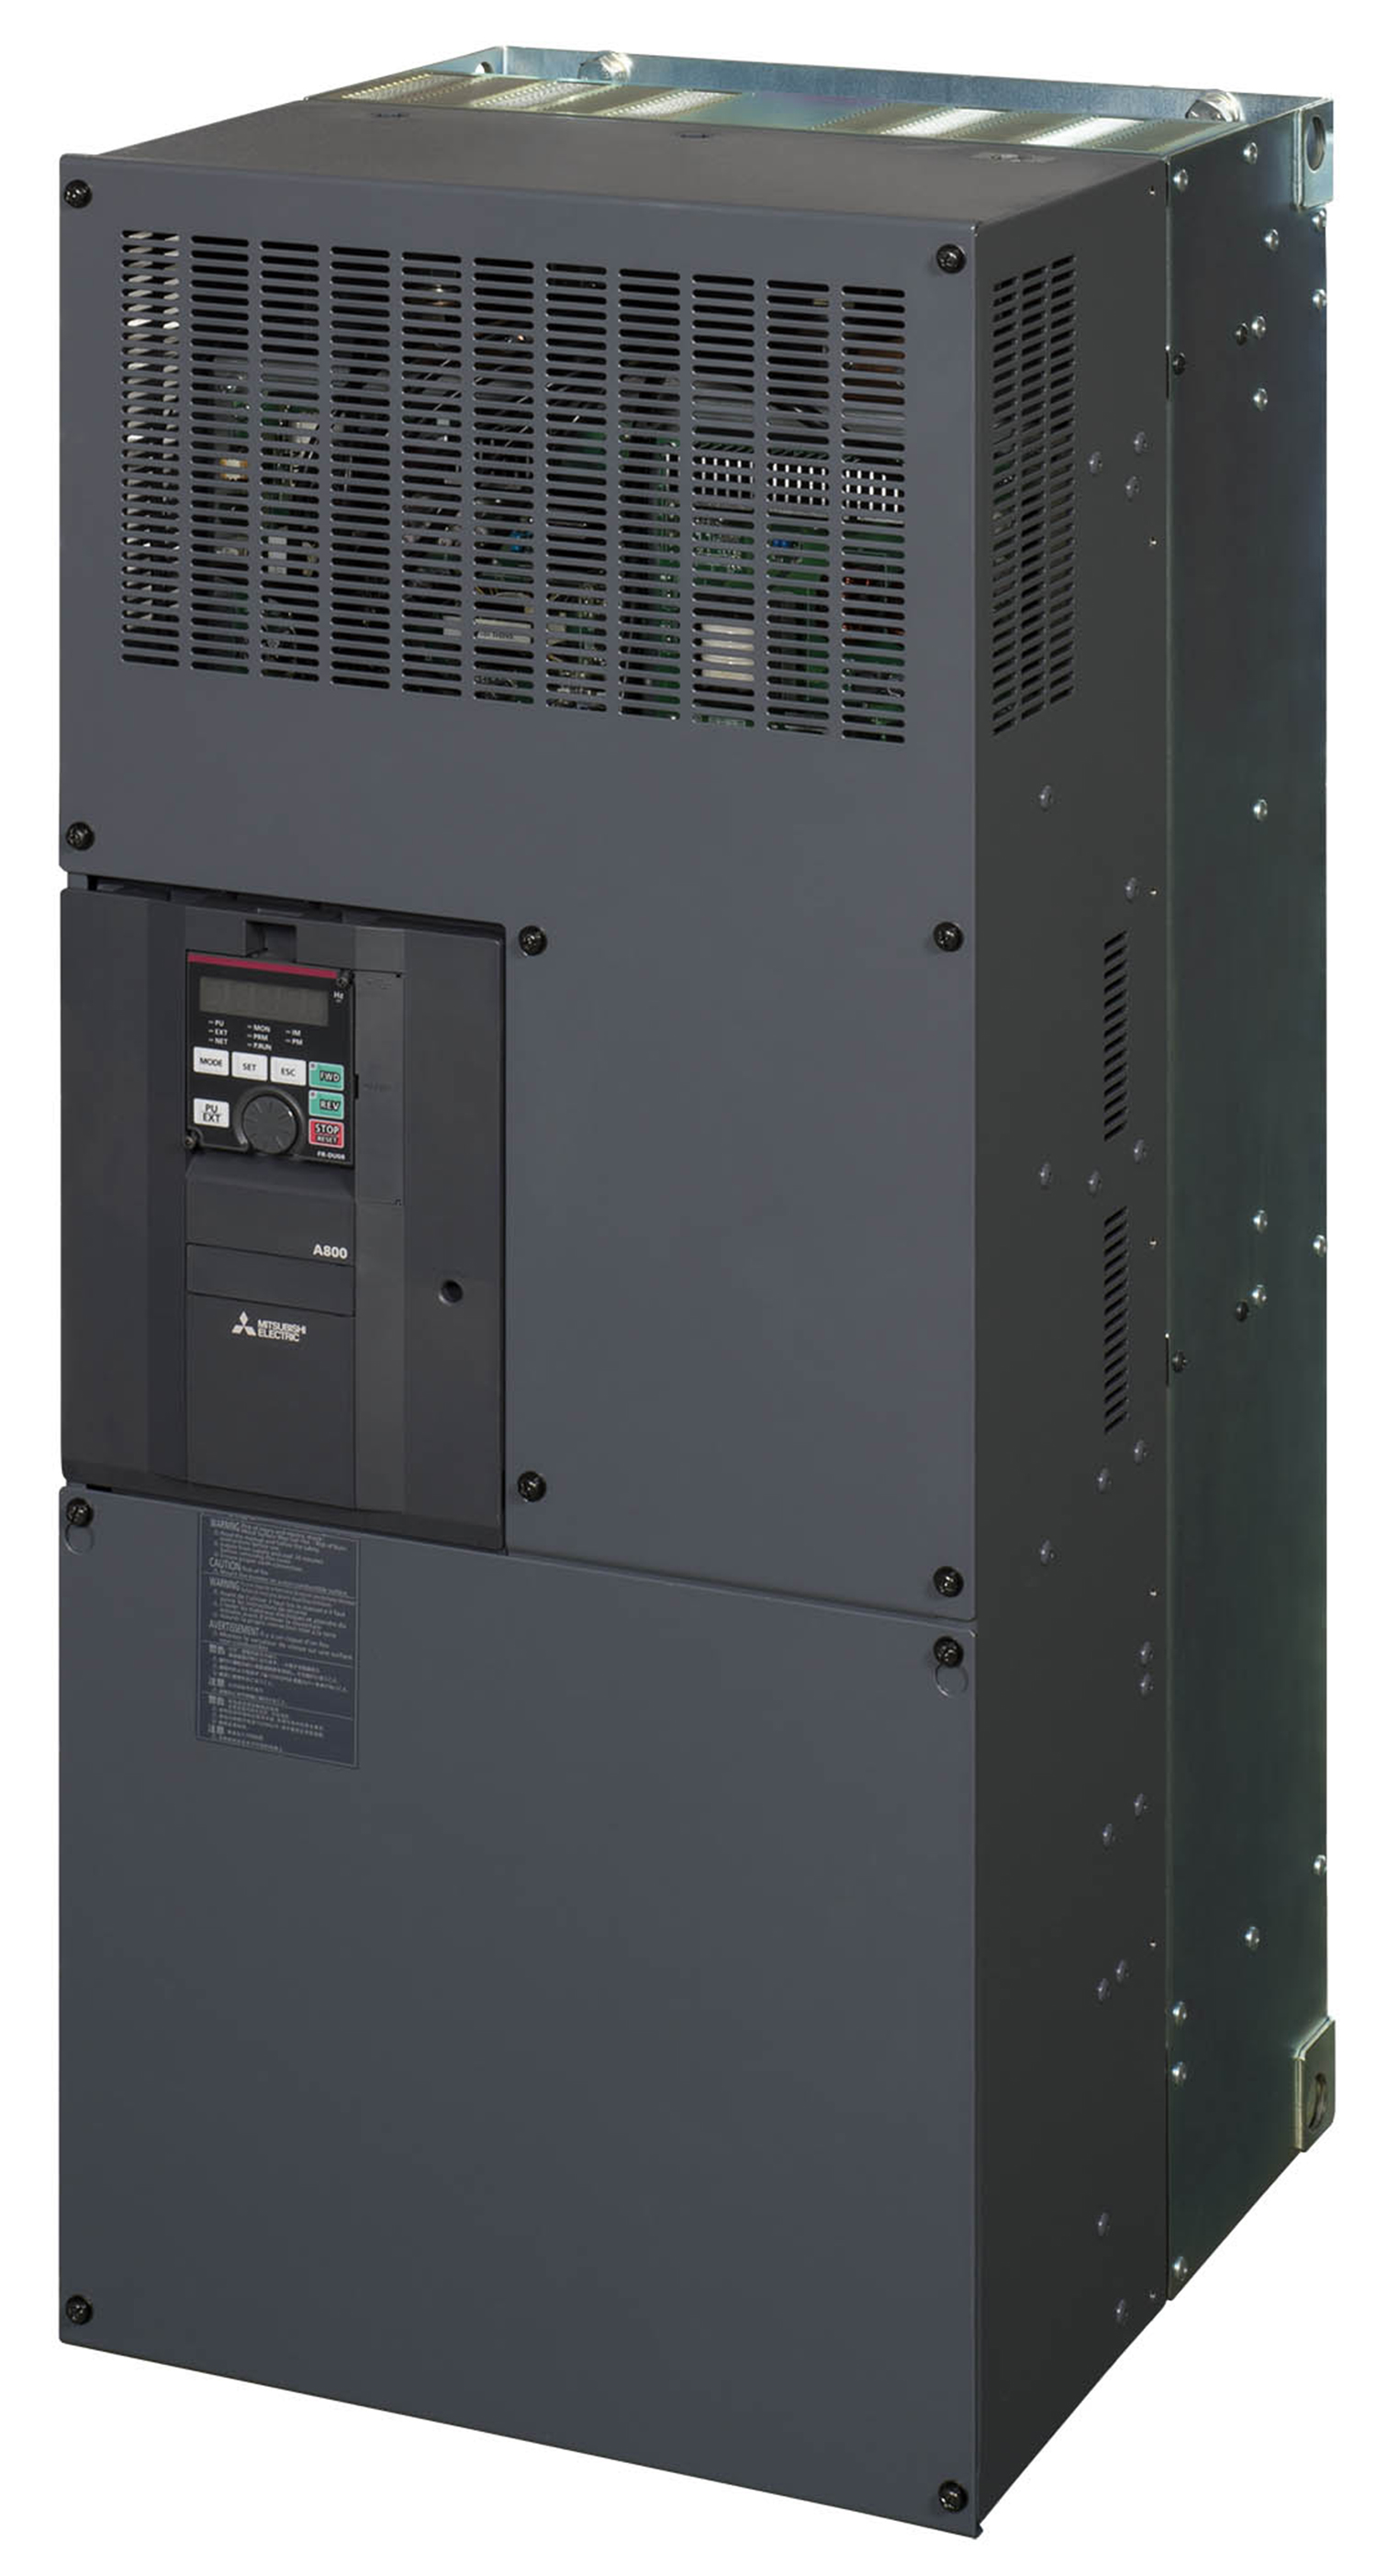 New performance inverters for applications with high power requirements